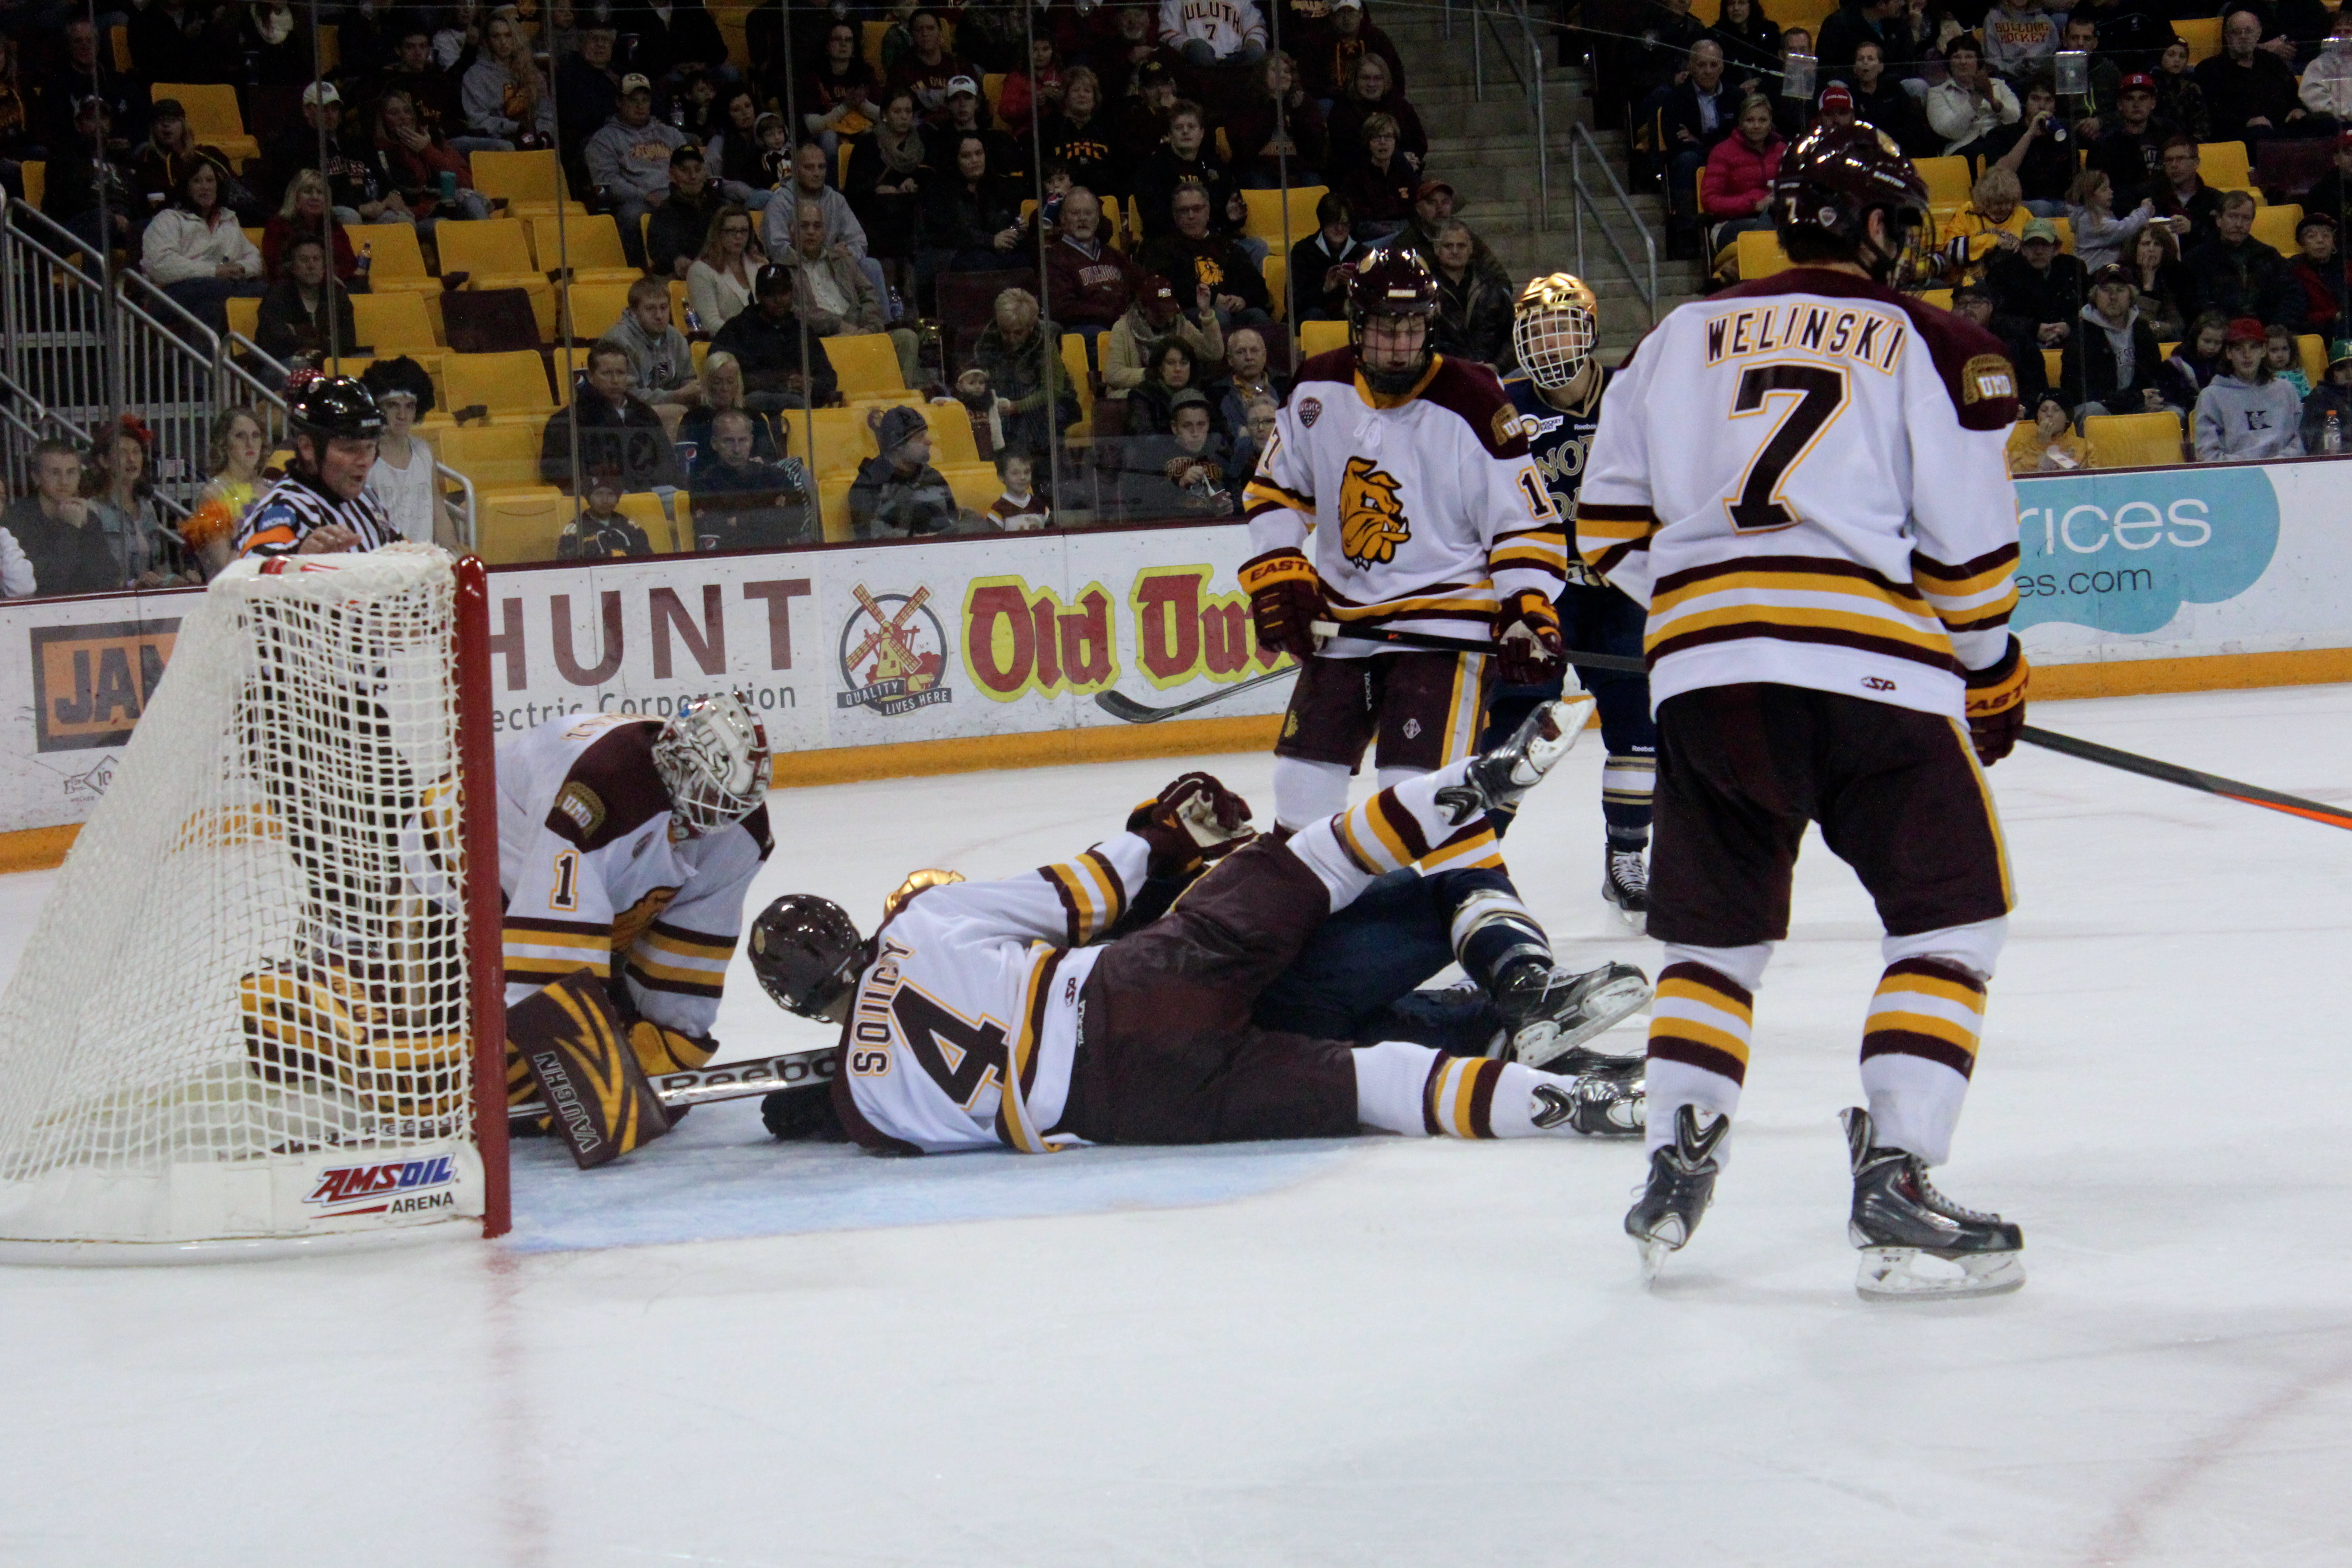 UMD's Carson Soucy (#4) in action on Oct 26, 2013 in a 4-1 Win over Notre Dame at Amsoil Arena in Duluth, MN. Photo credit - Rylie Heilman UMD.